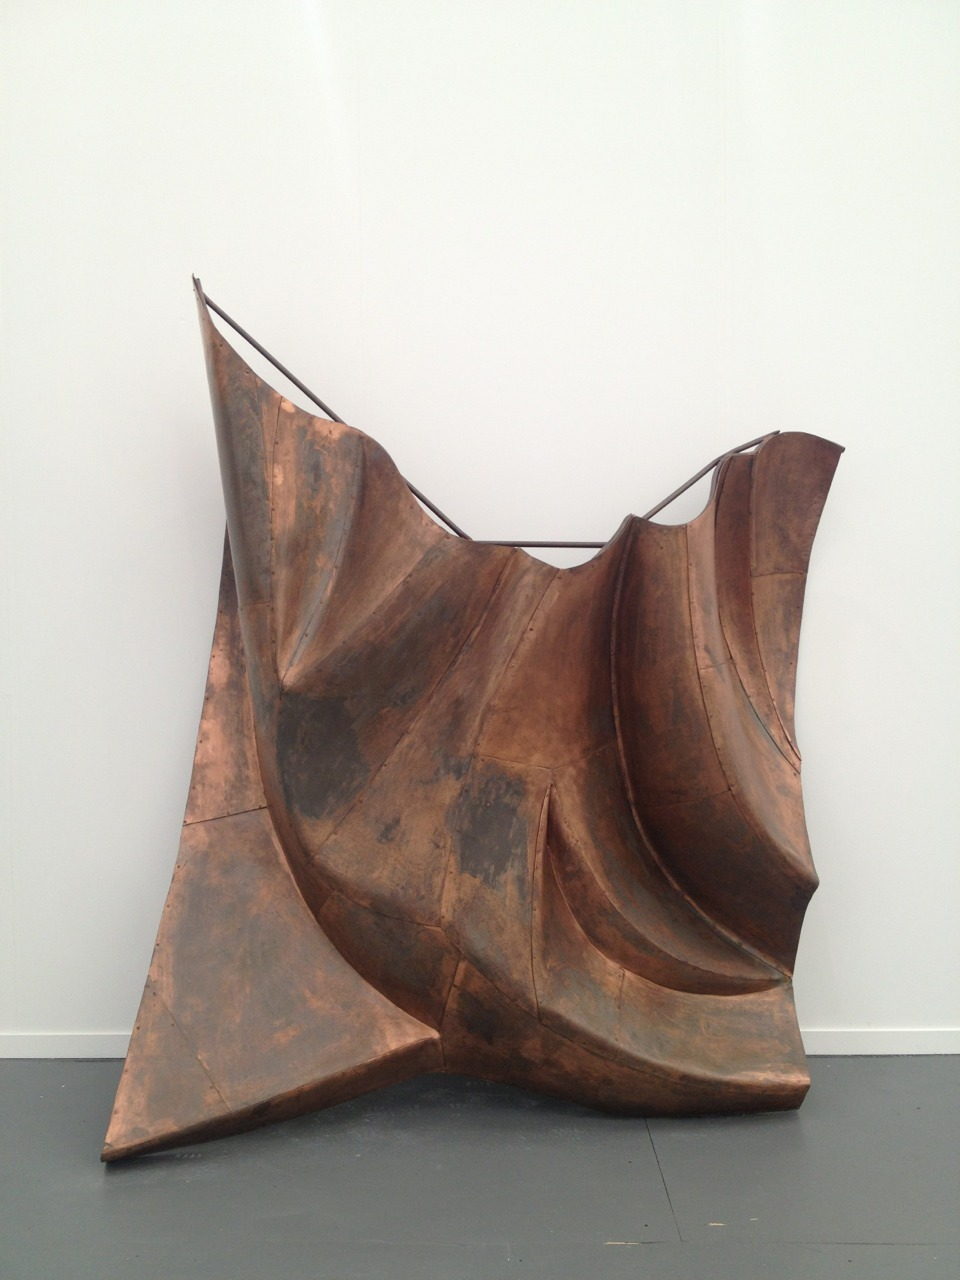 thetuesdayafter:  Danh Vo at Chantal Crousel